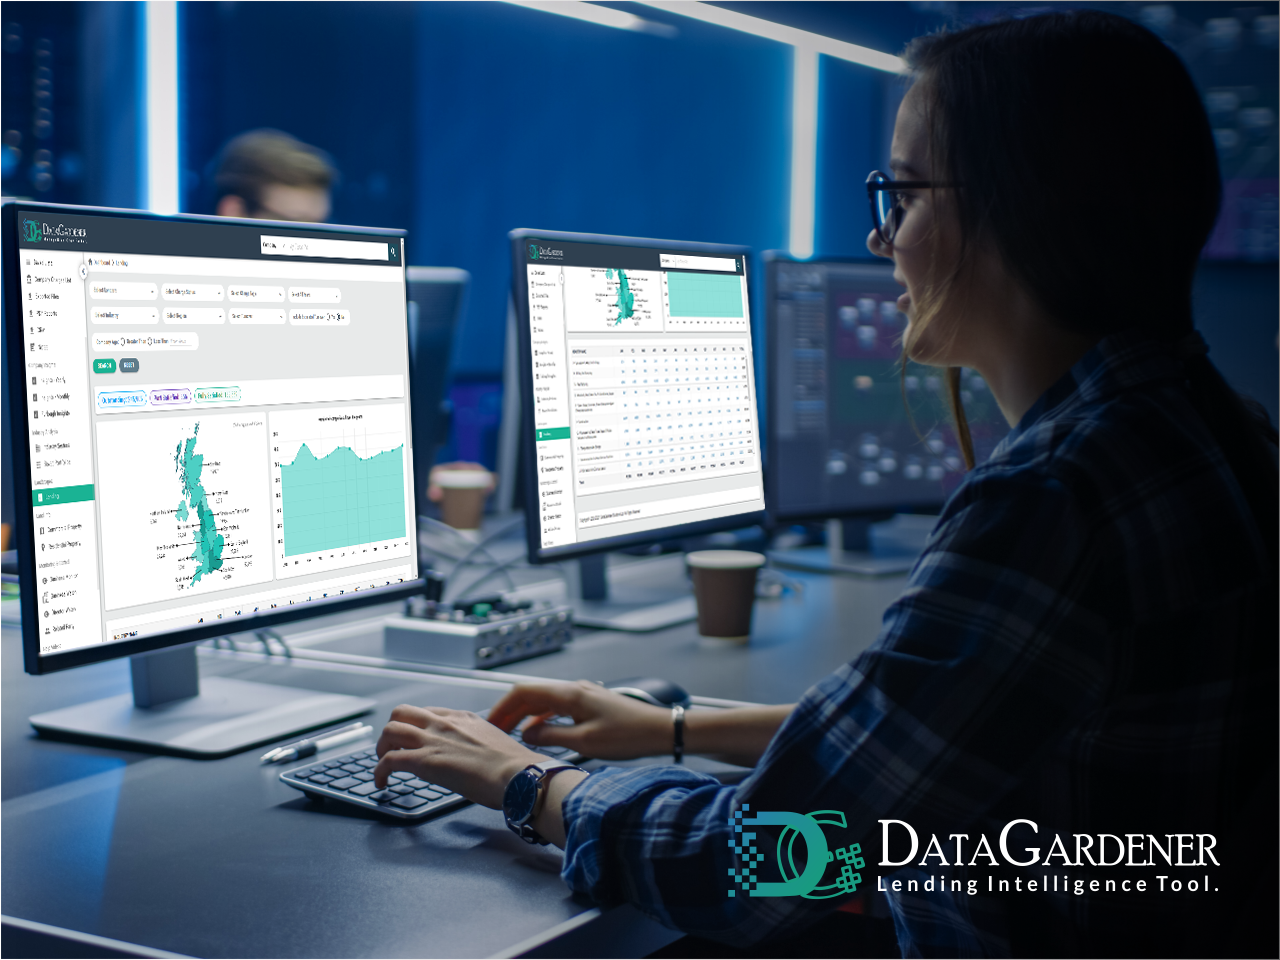 DataGardener Launches its Lending Intelligence Tool, the Industry's First Solution of its kind.